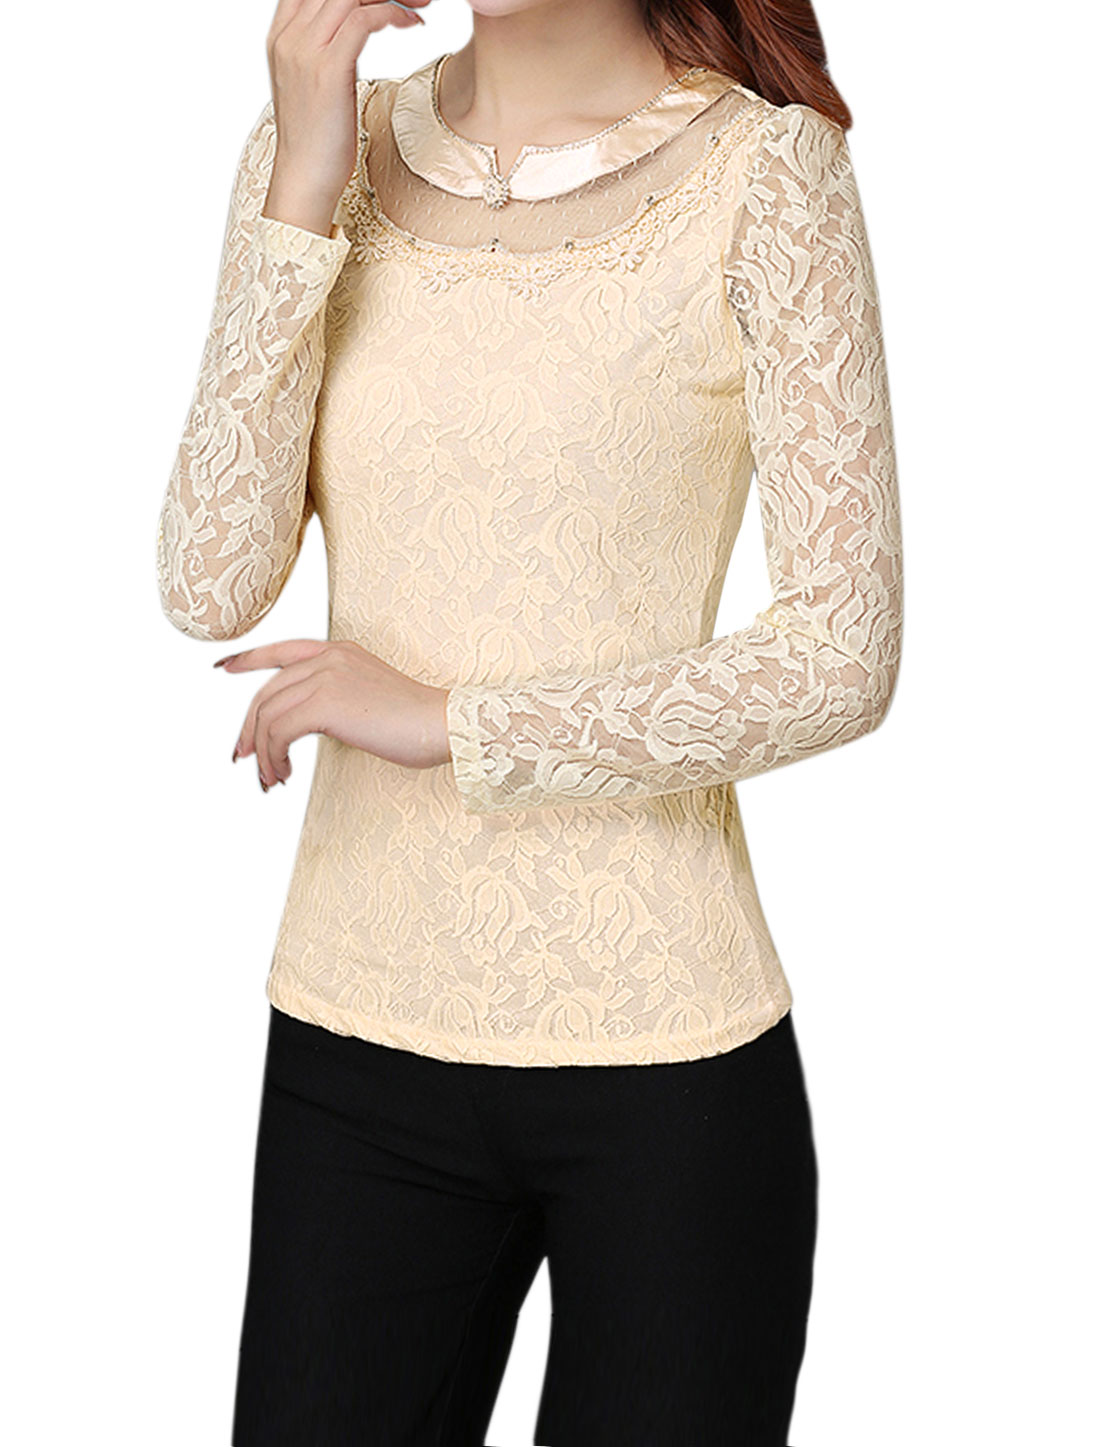 Women Beaded Rhinestone Slim Fit Floral Lace Top Beige M